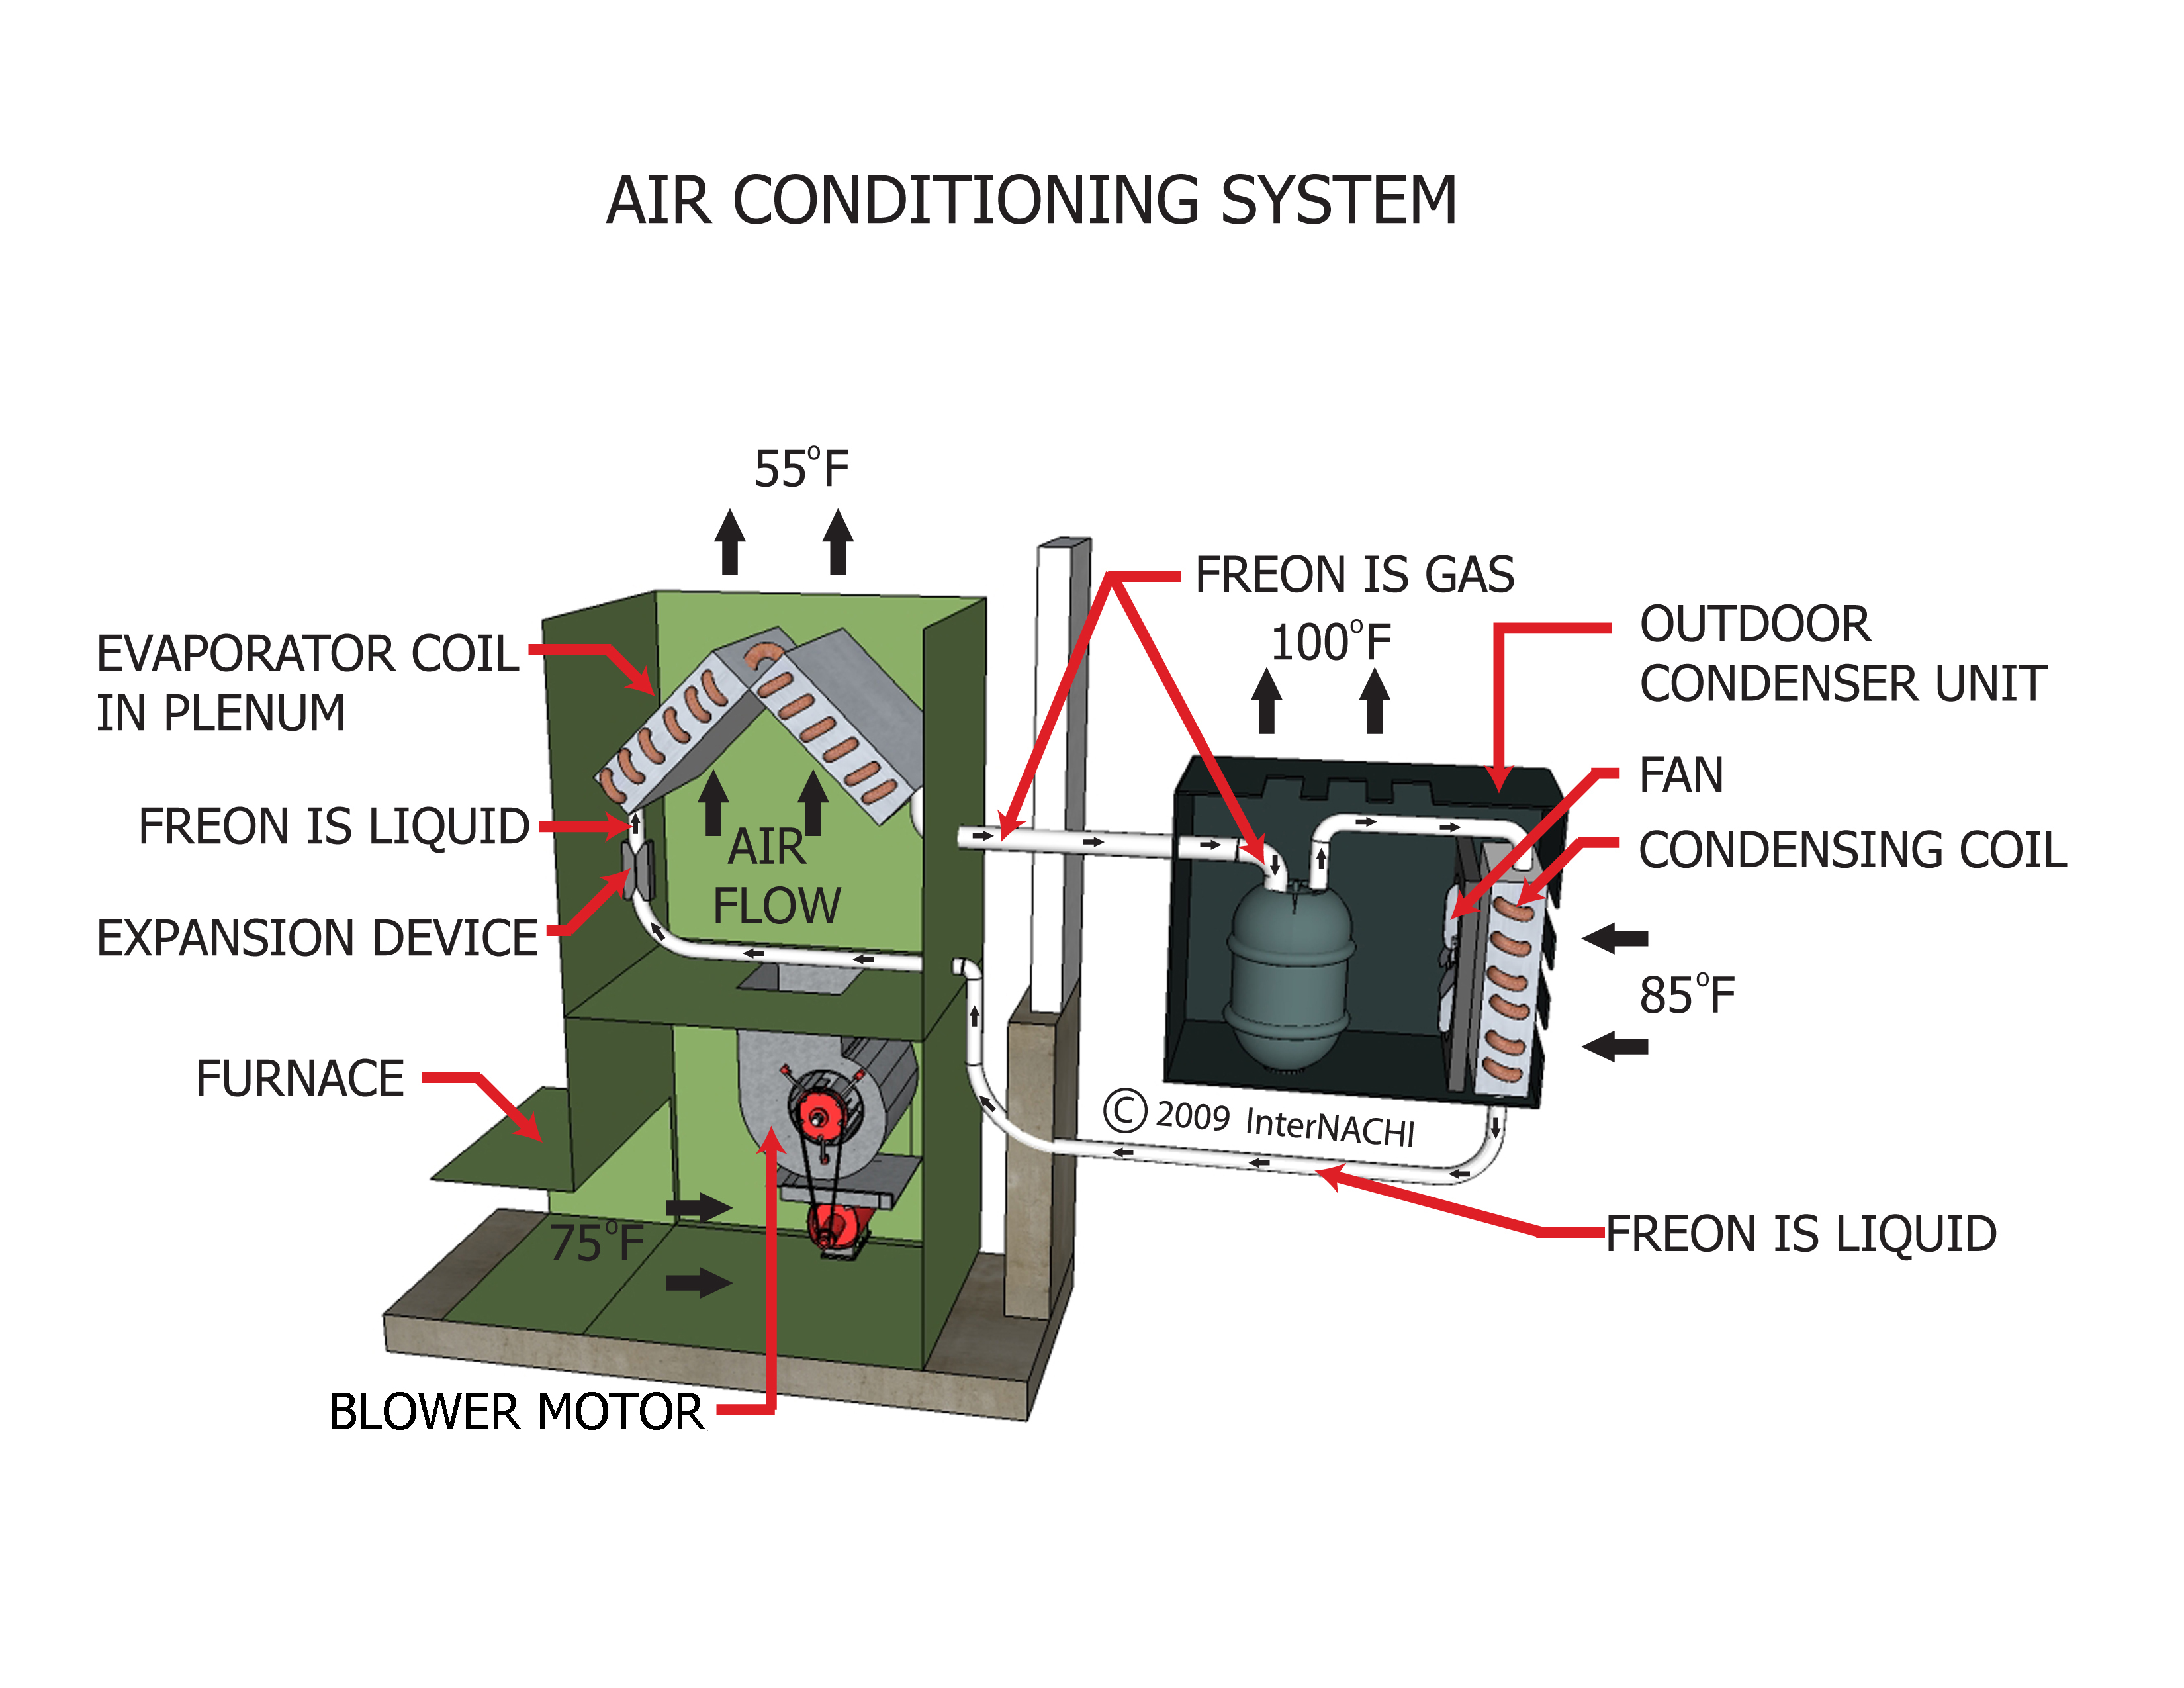 Inspecting Compression Cooling Systems Internachi Commercial Evaporator Wiring Diagram A Traditional Split System Air Source Central Heat Pump Has An Outdoor Unit With Condenser And Compressor Indoor Handler